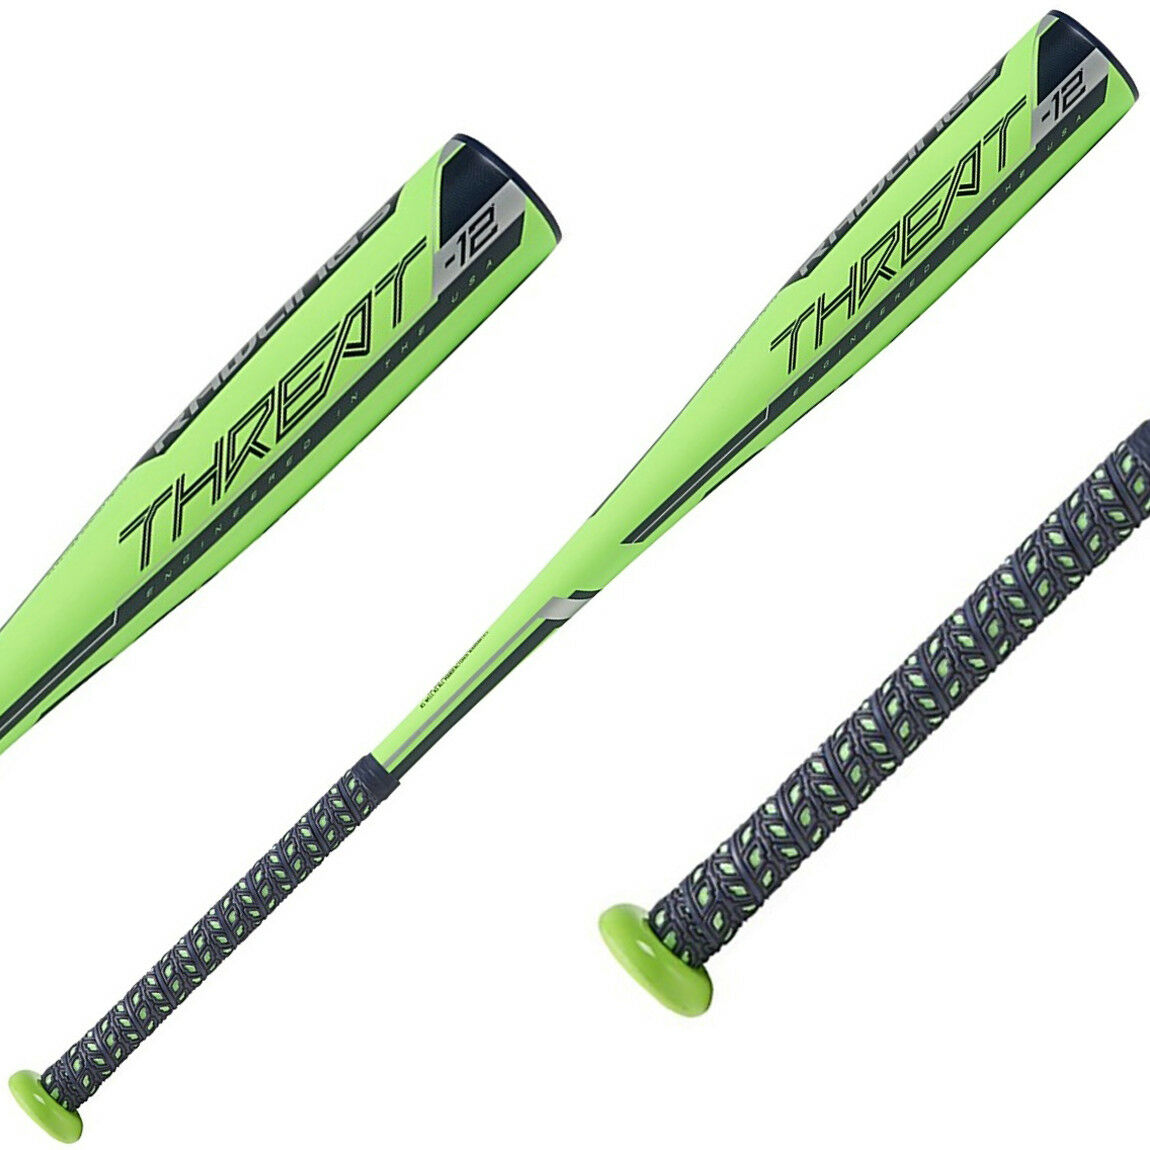 Rawlings Threat -12 USA Composite Baseball Bat (NEW) Lists @